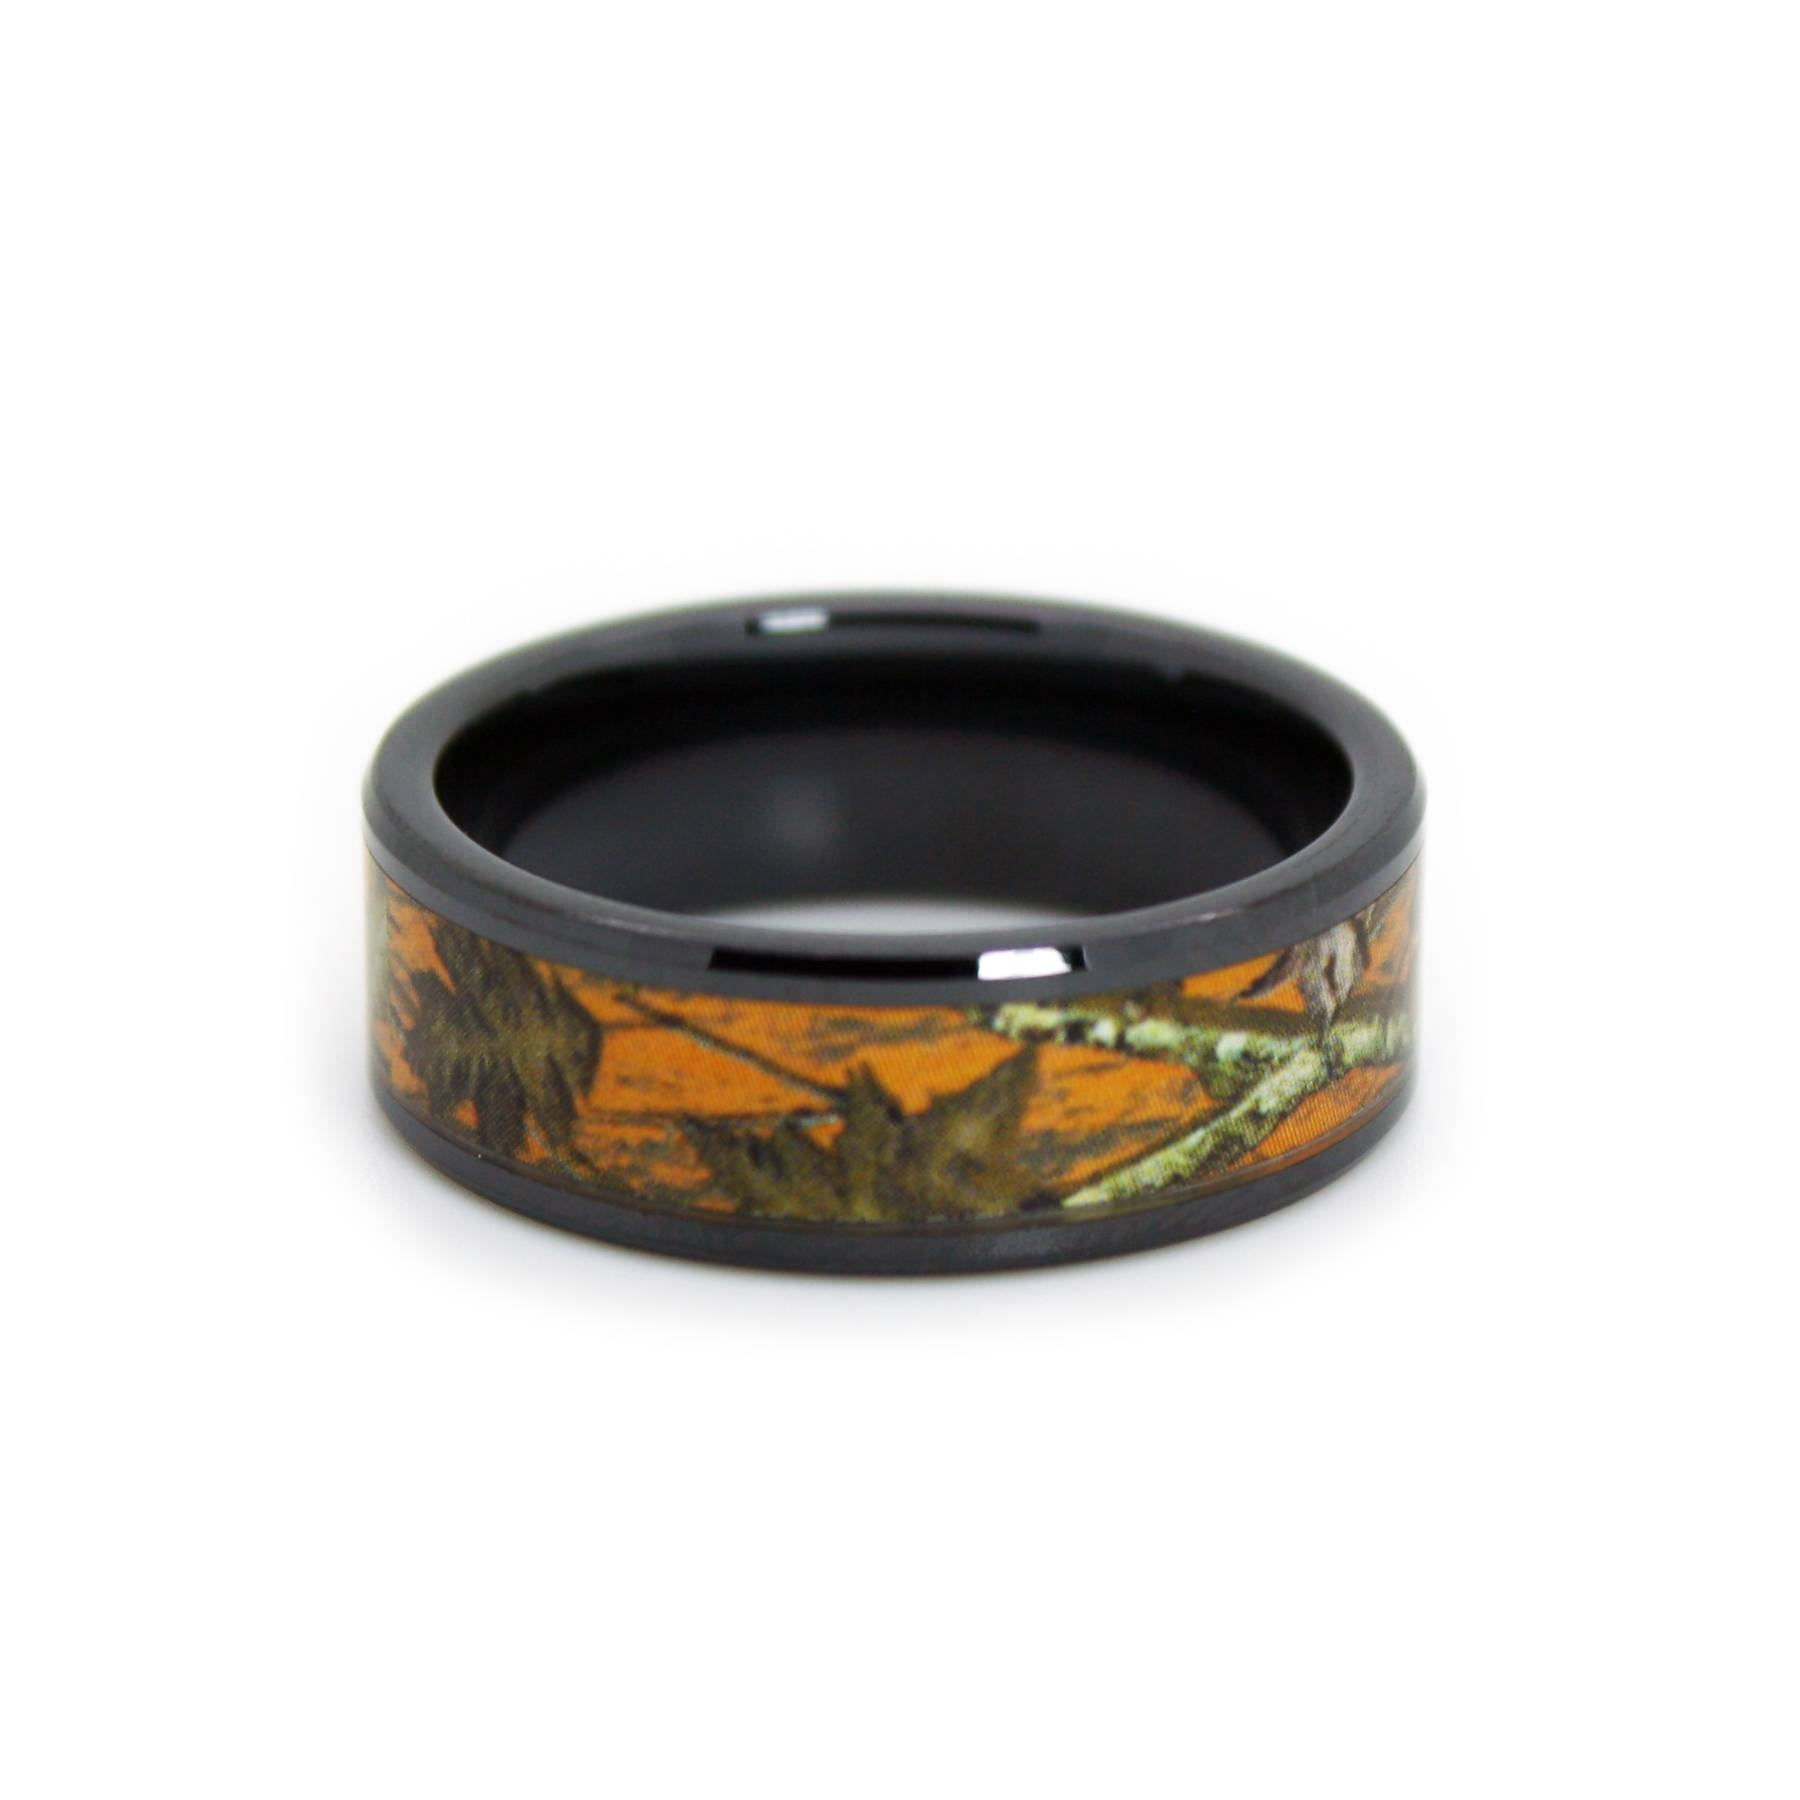 Orange Camo Wedding Rings, Hunting Blaze Orange Camo Band – 1Camo Throughout Camouflage Wedding Bands For Him (View 13 of 15)